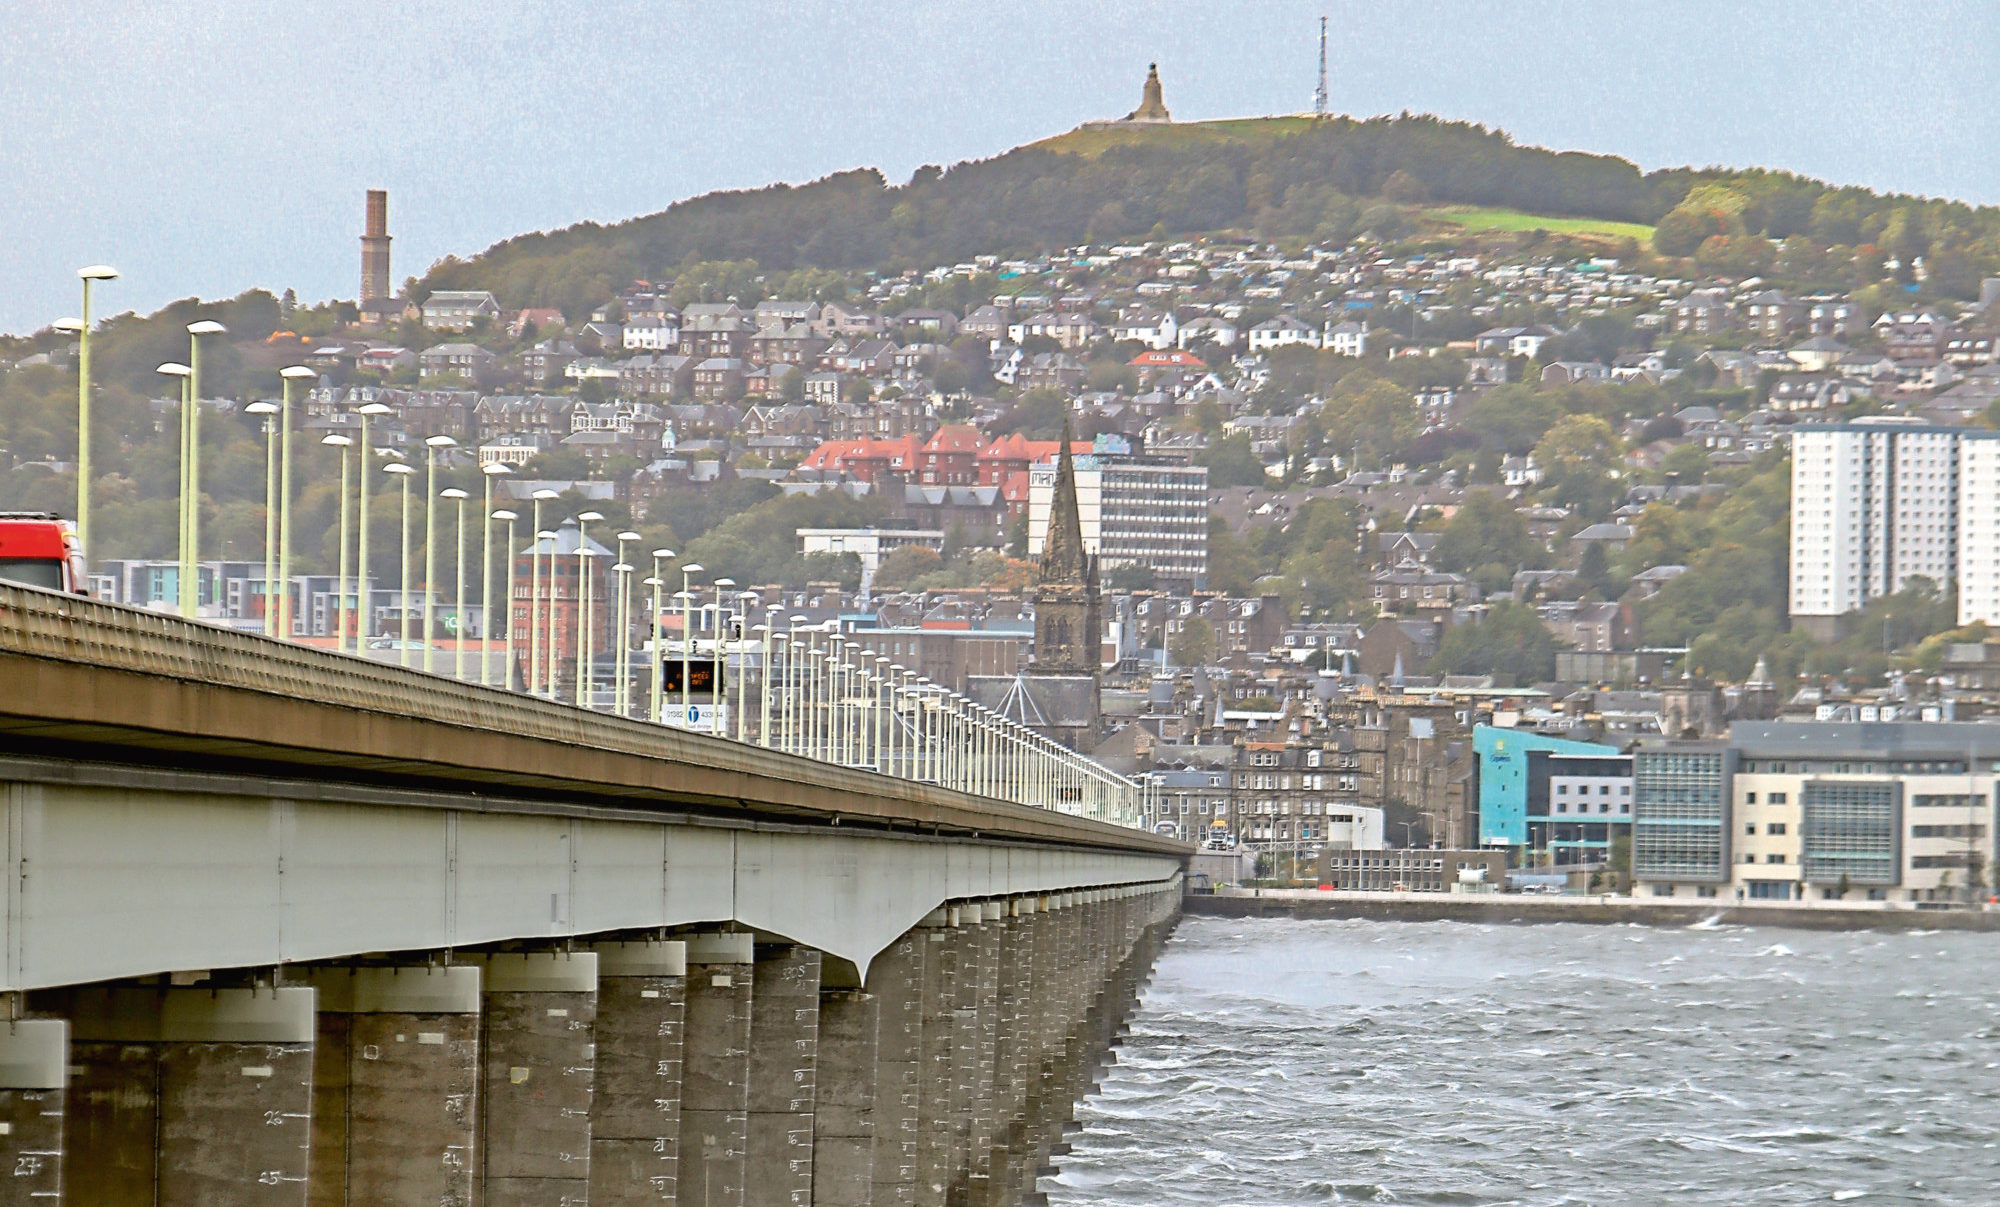 The incident happened on the Tay Road Bridge.